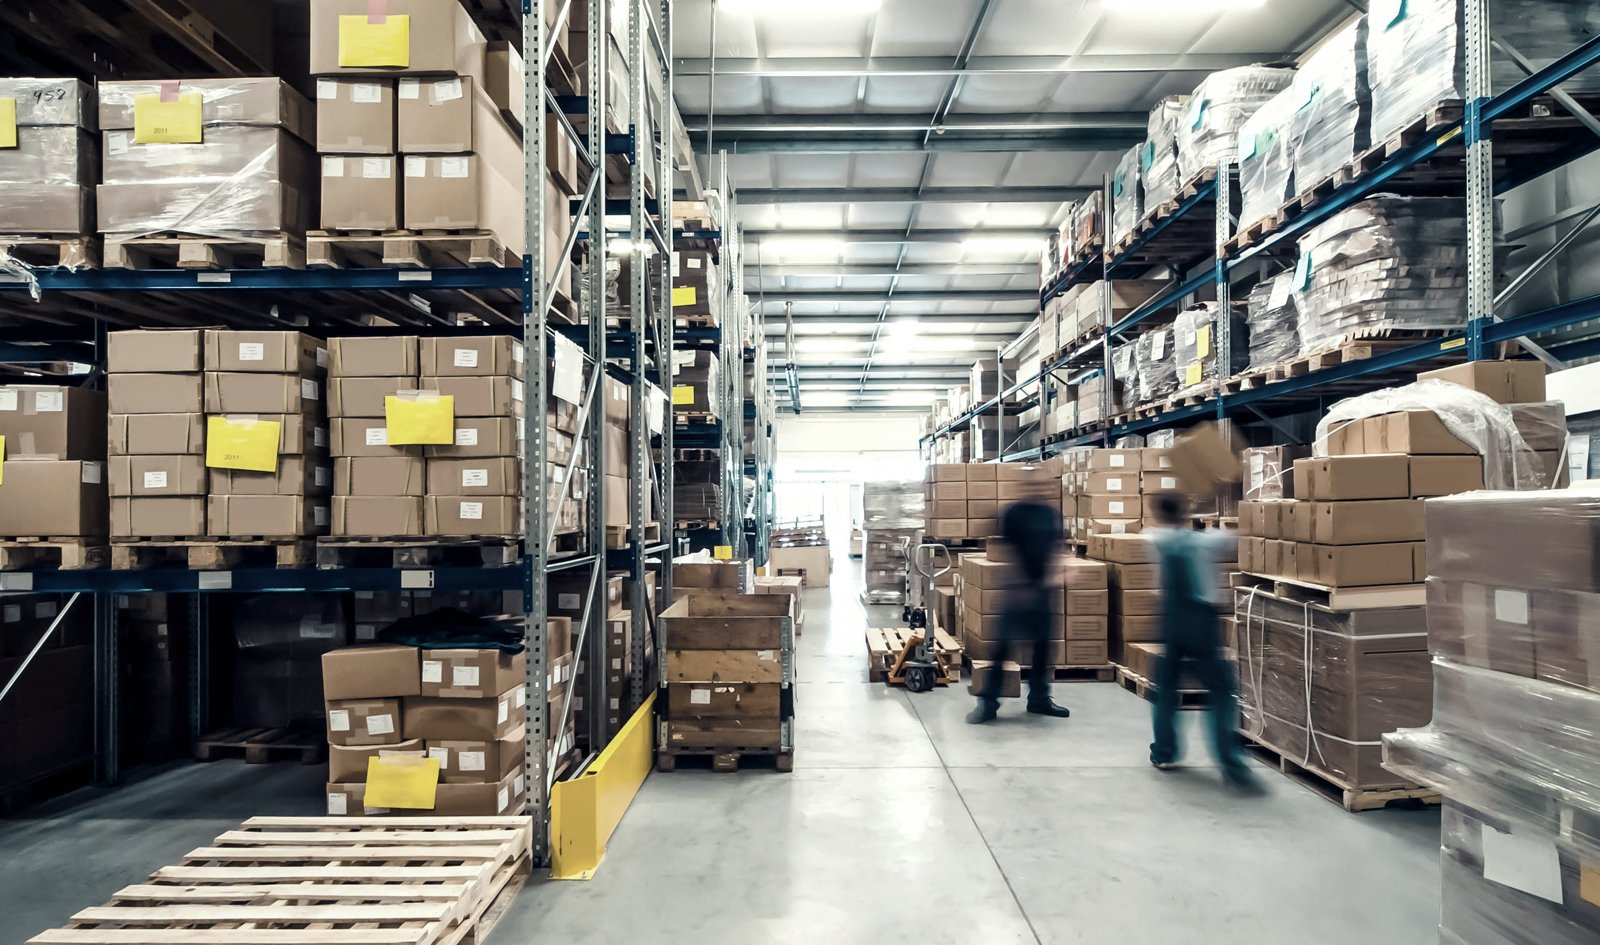 Warehouse solution for IoT device inventory